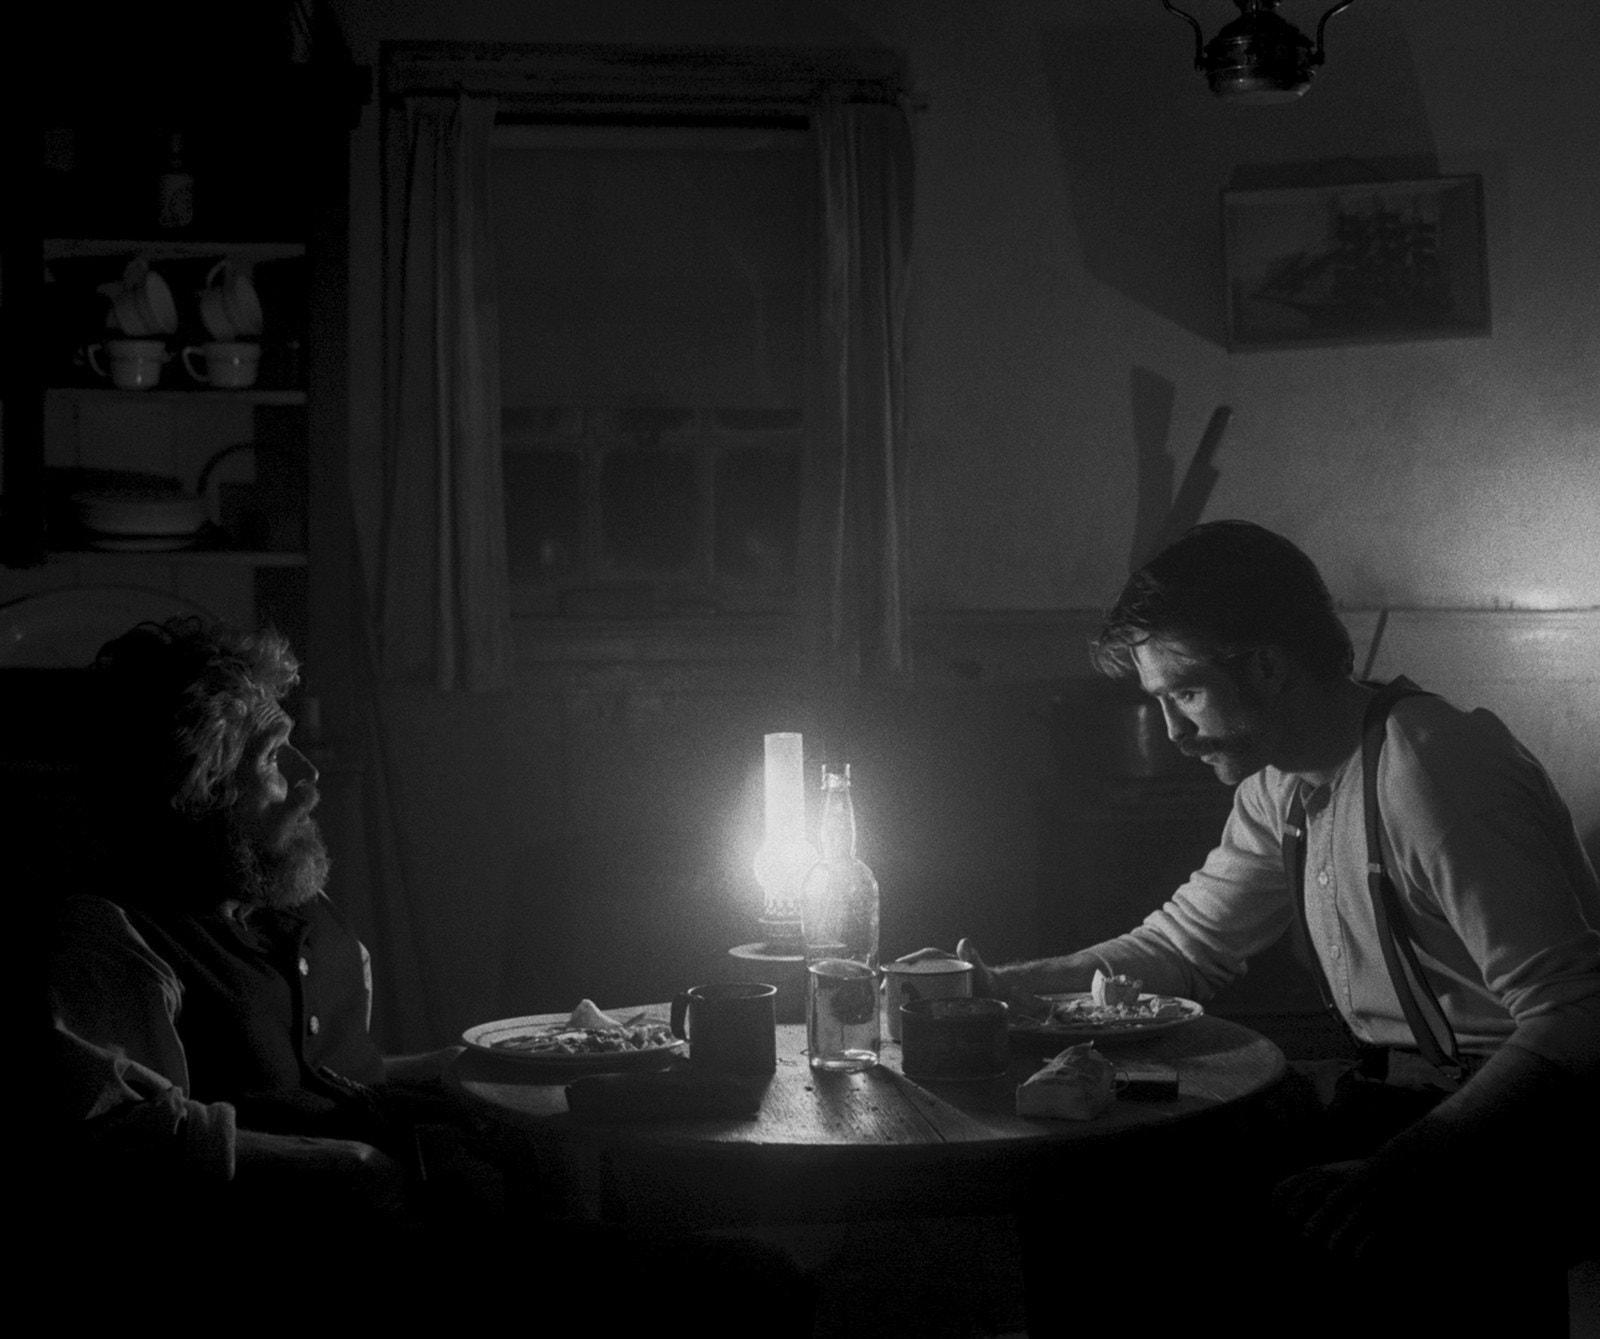 Robert Eggers' The Lighthouse shines bright